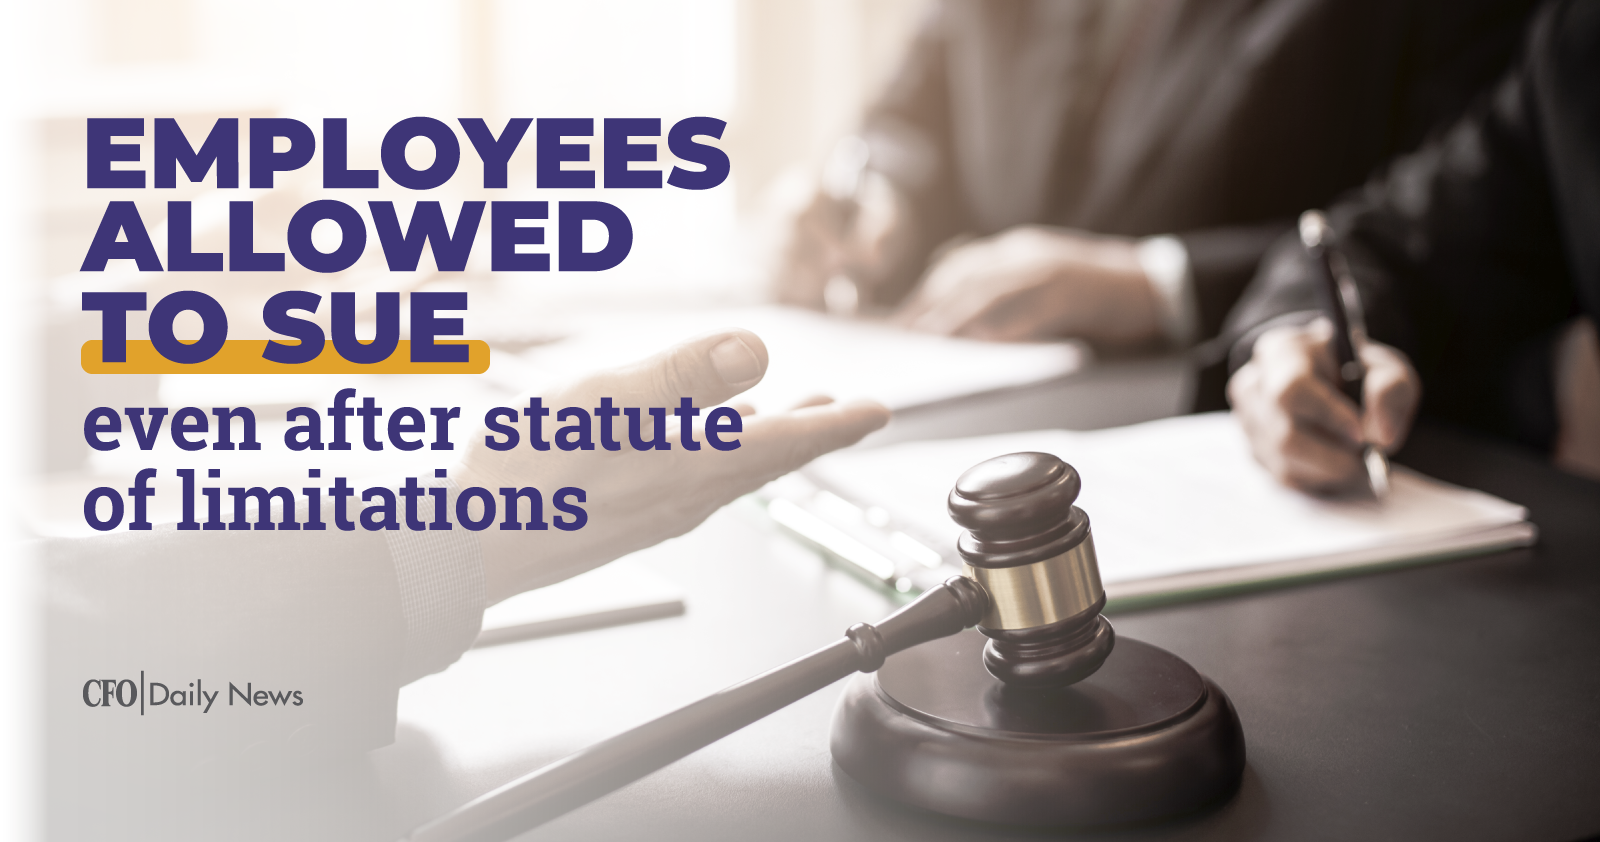 Employees allowed to sue even after statute of limitations